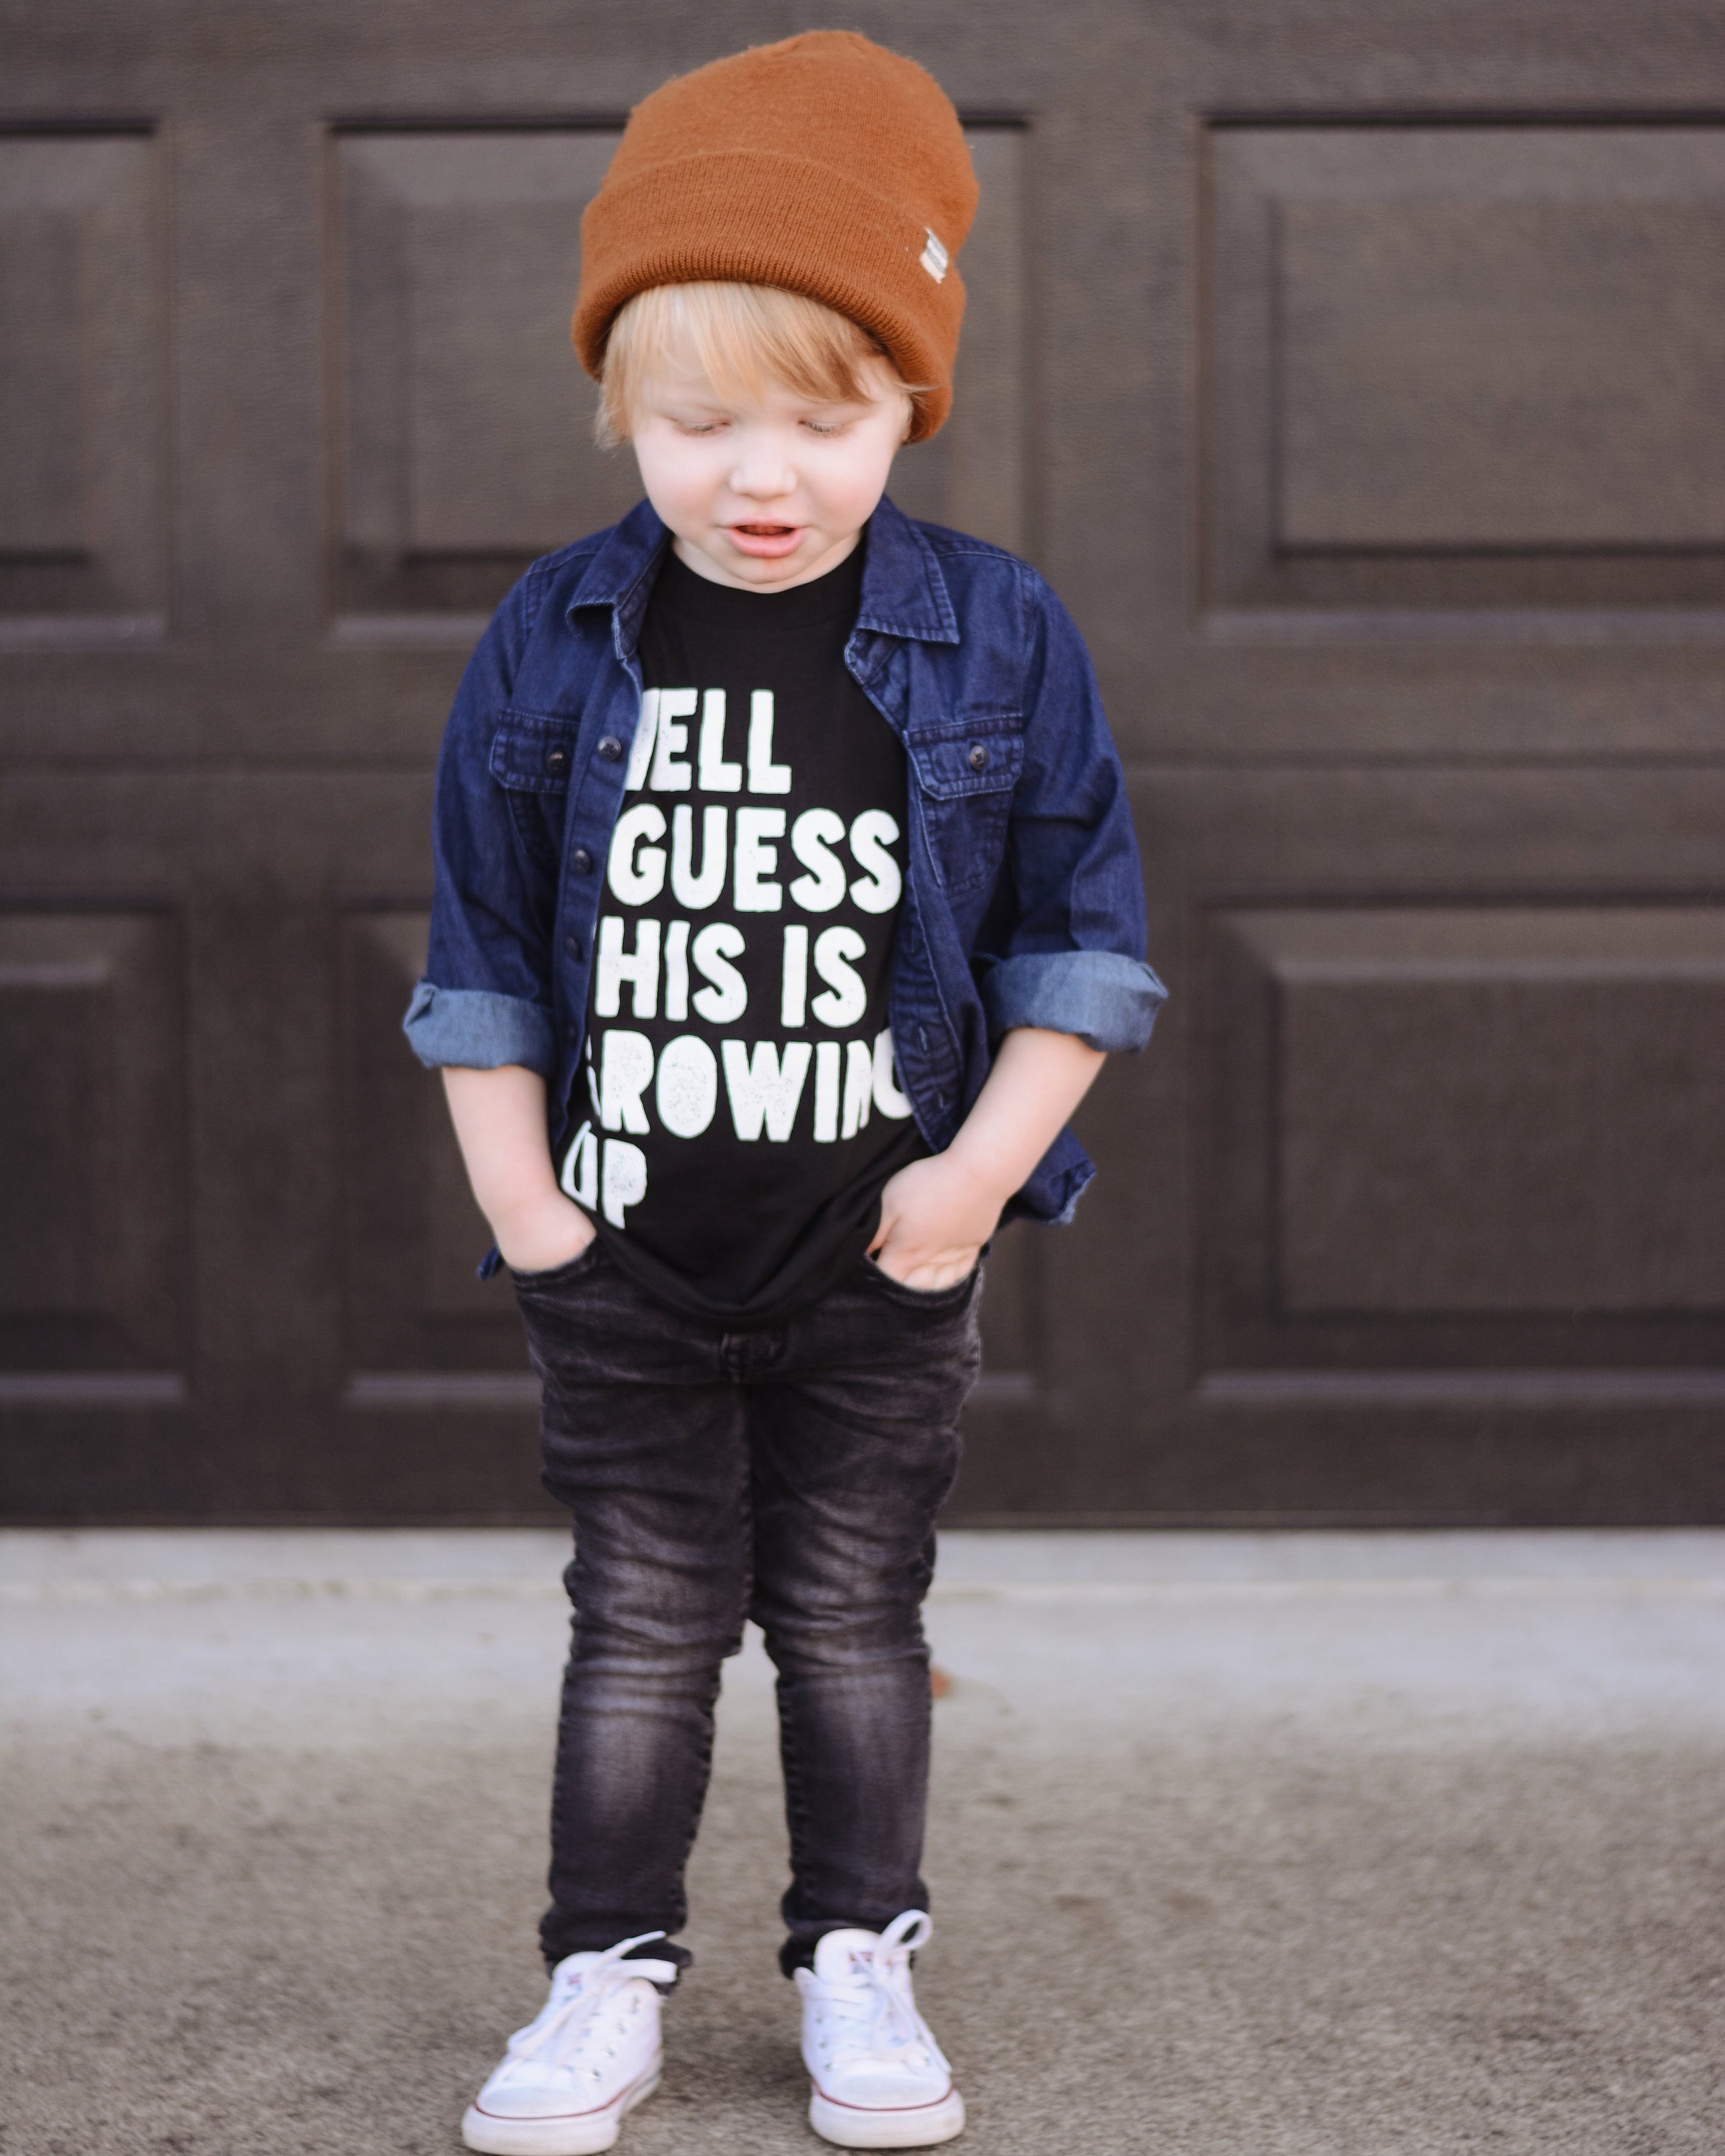 Growing Up | kid's tee